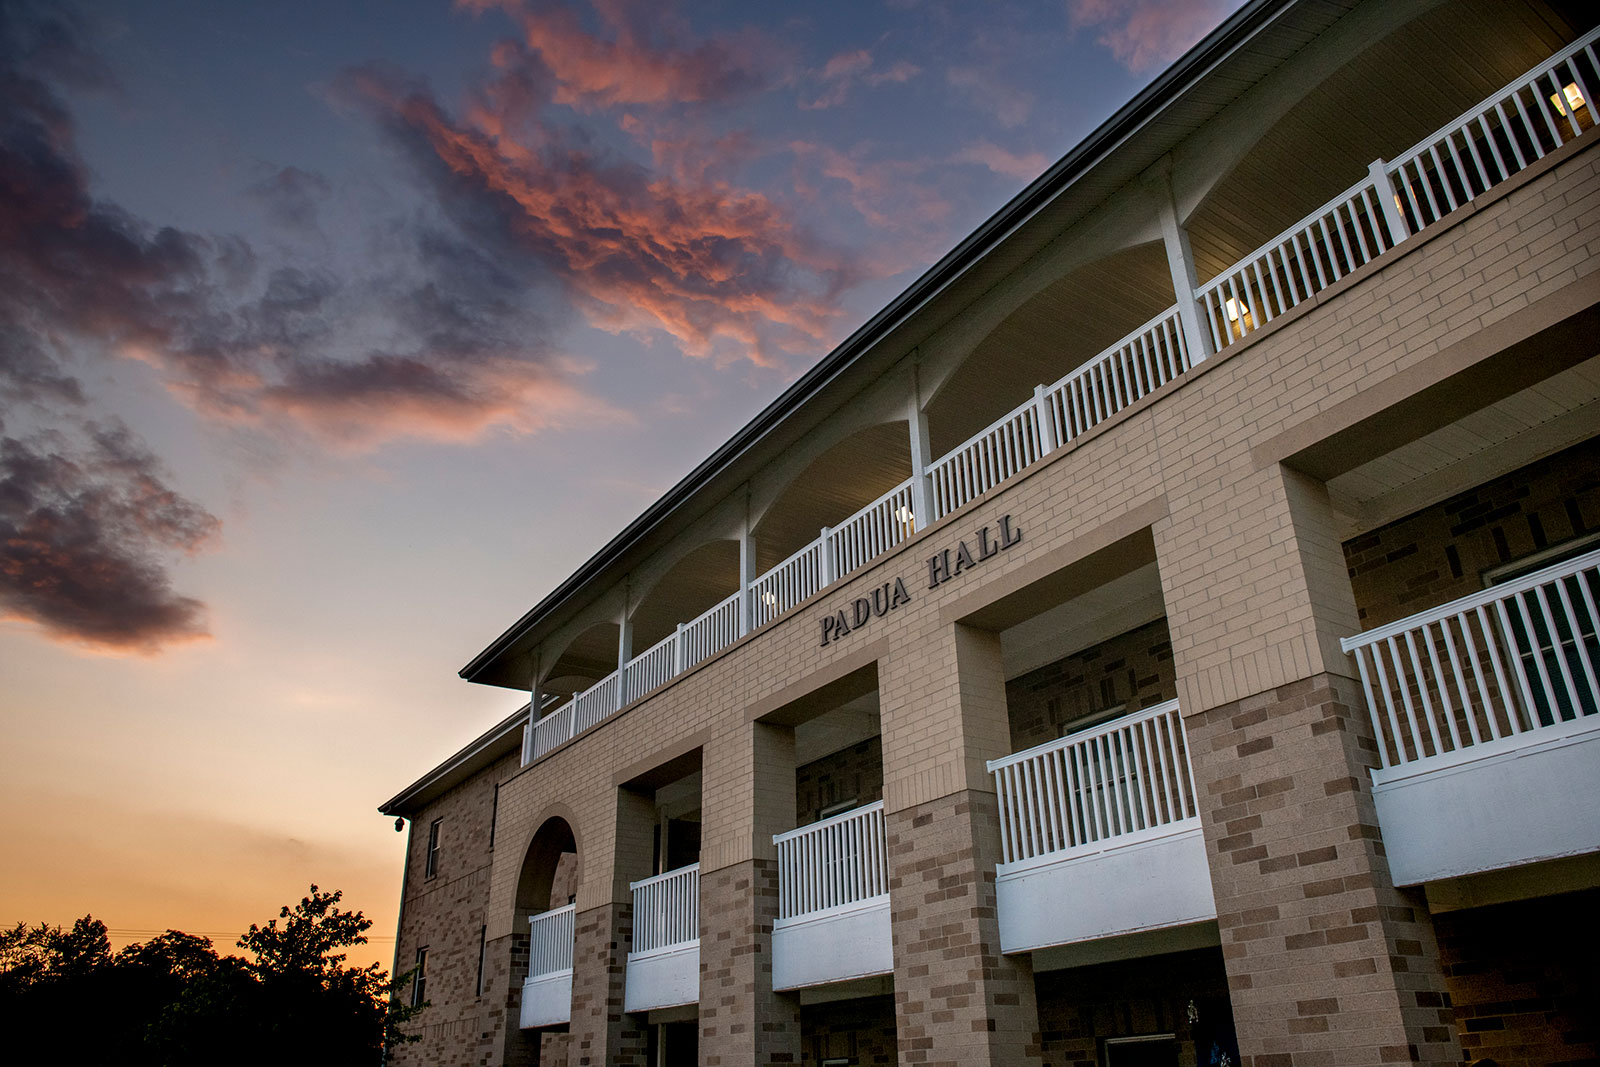 Situated on the west side of campus nestled around trees, Padua Hall offers apartment-style living for juniors and seniors.